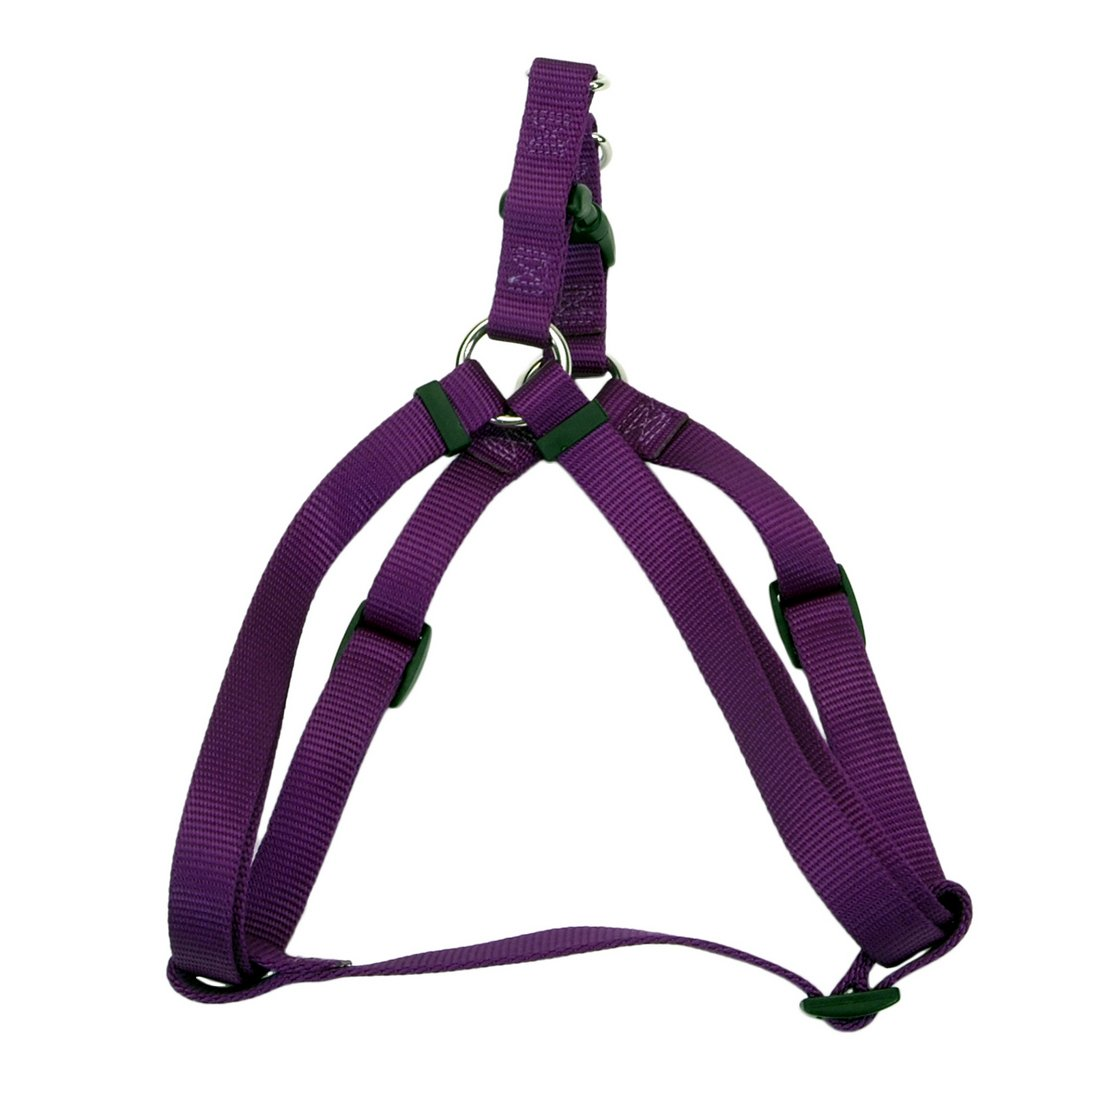 coastal-comfort-harness-1-purple